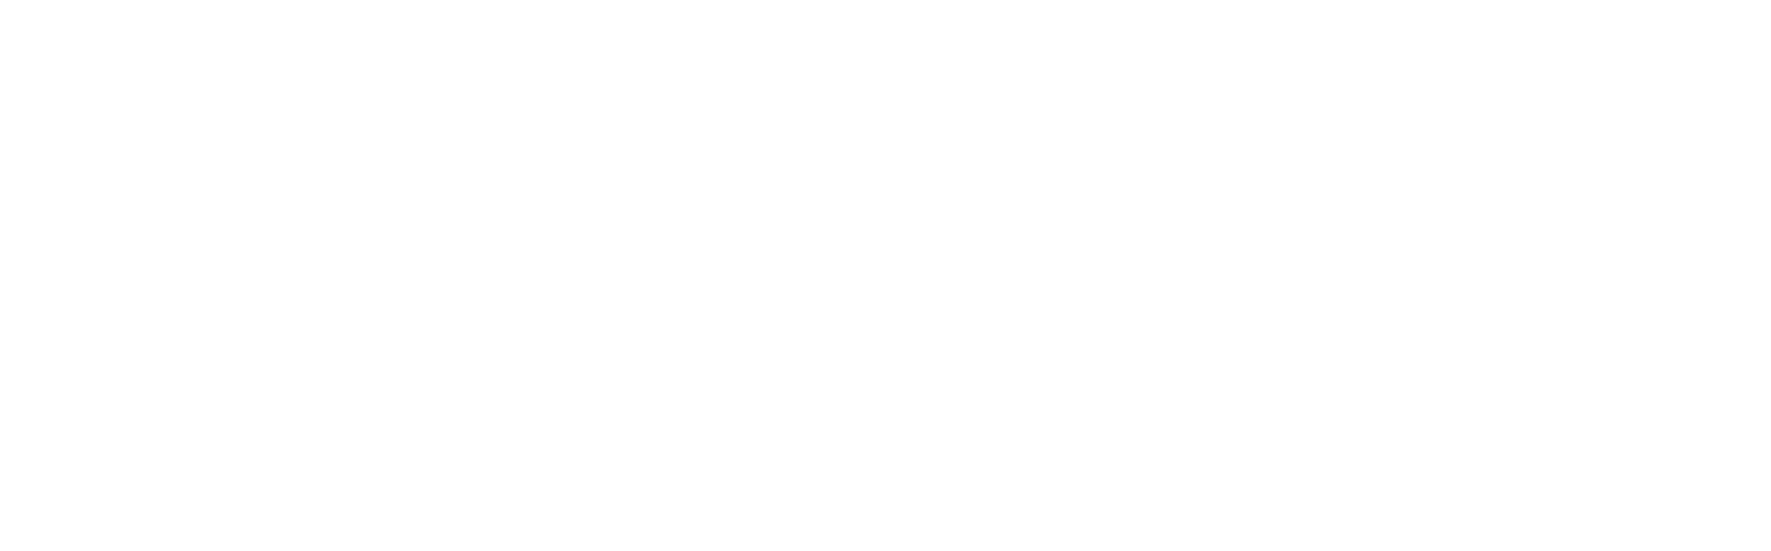 Brilhart Strass. Importadora e Distribuidoa de Strass no Atacado e Varejo